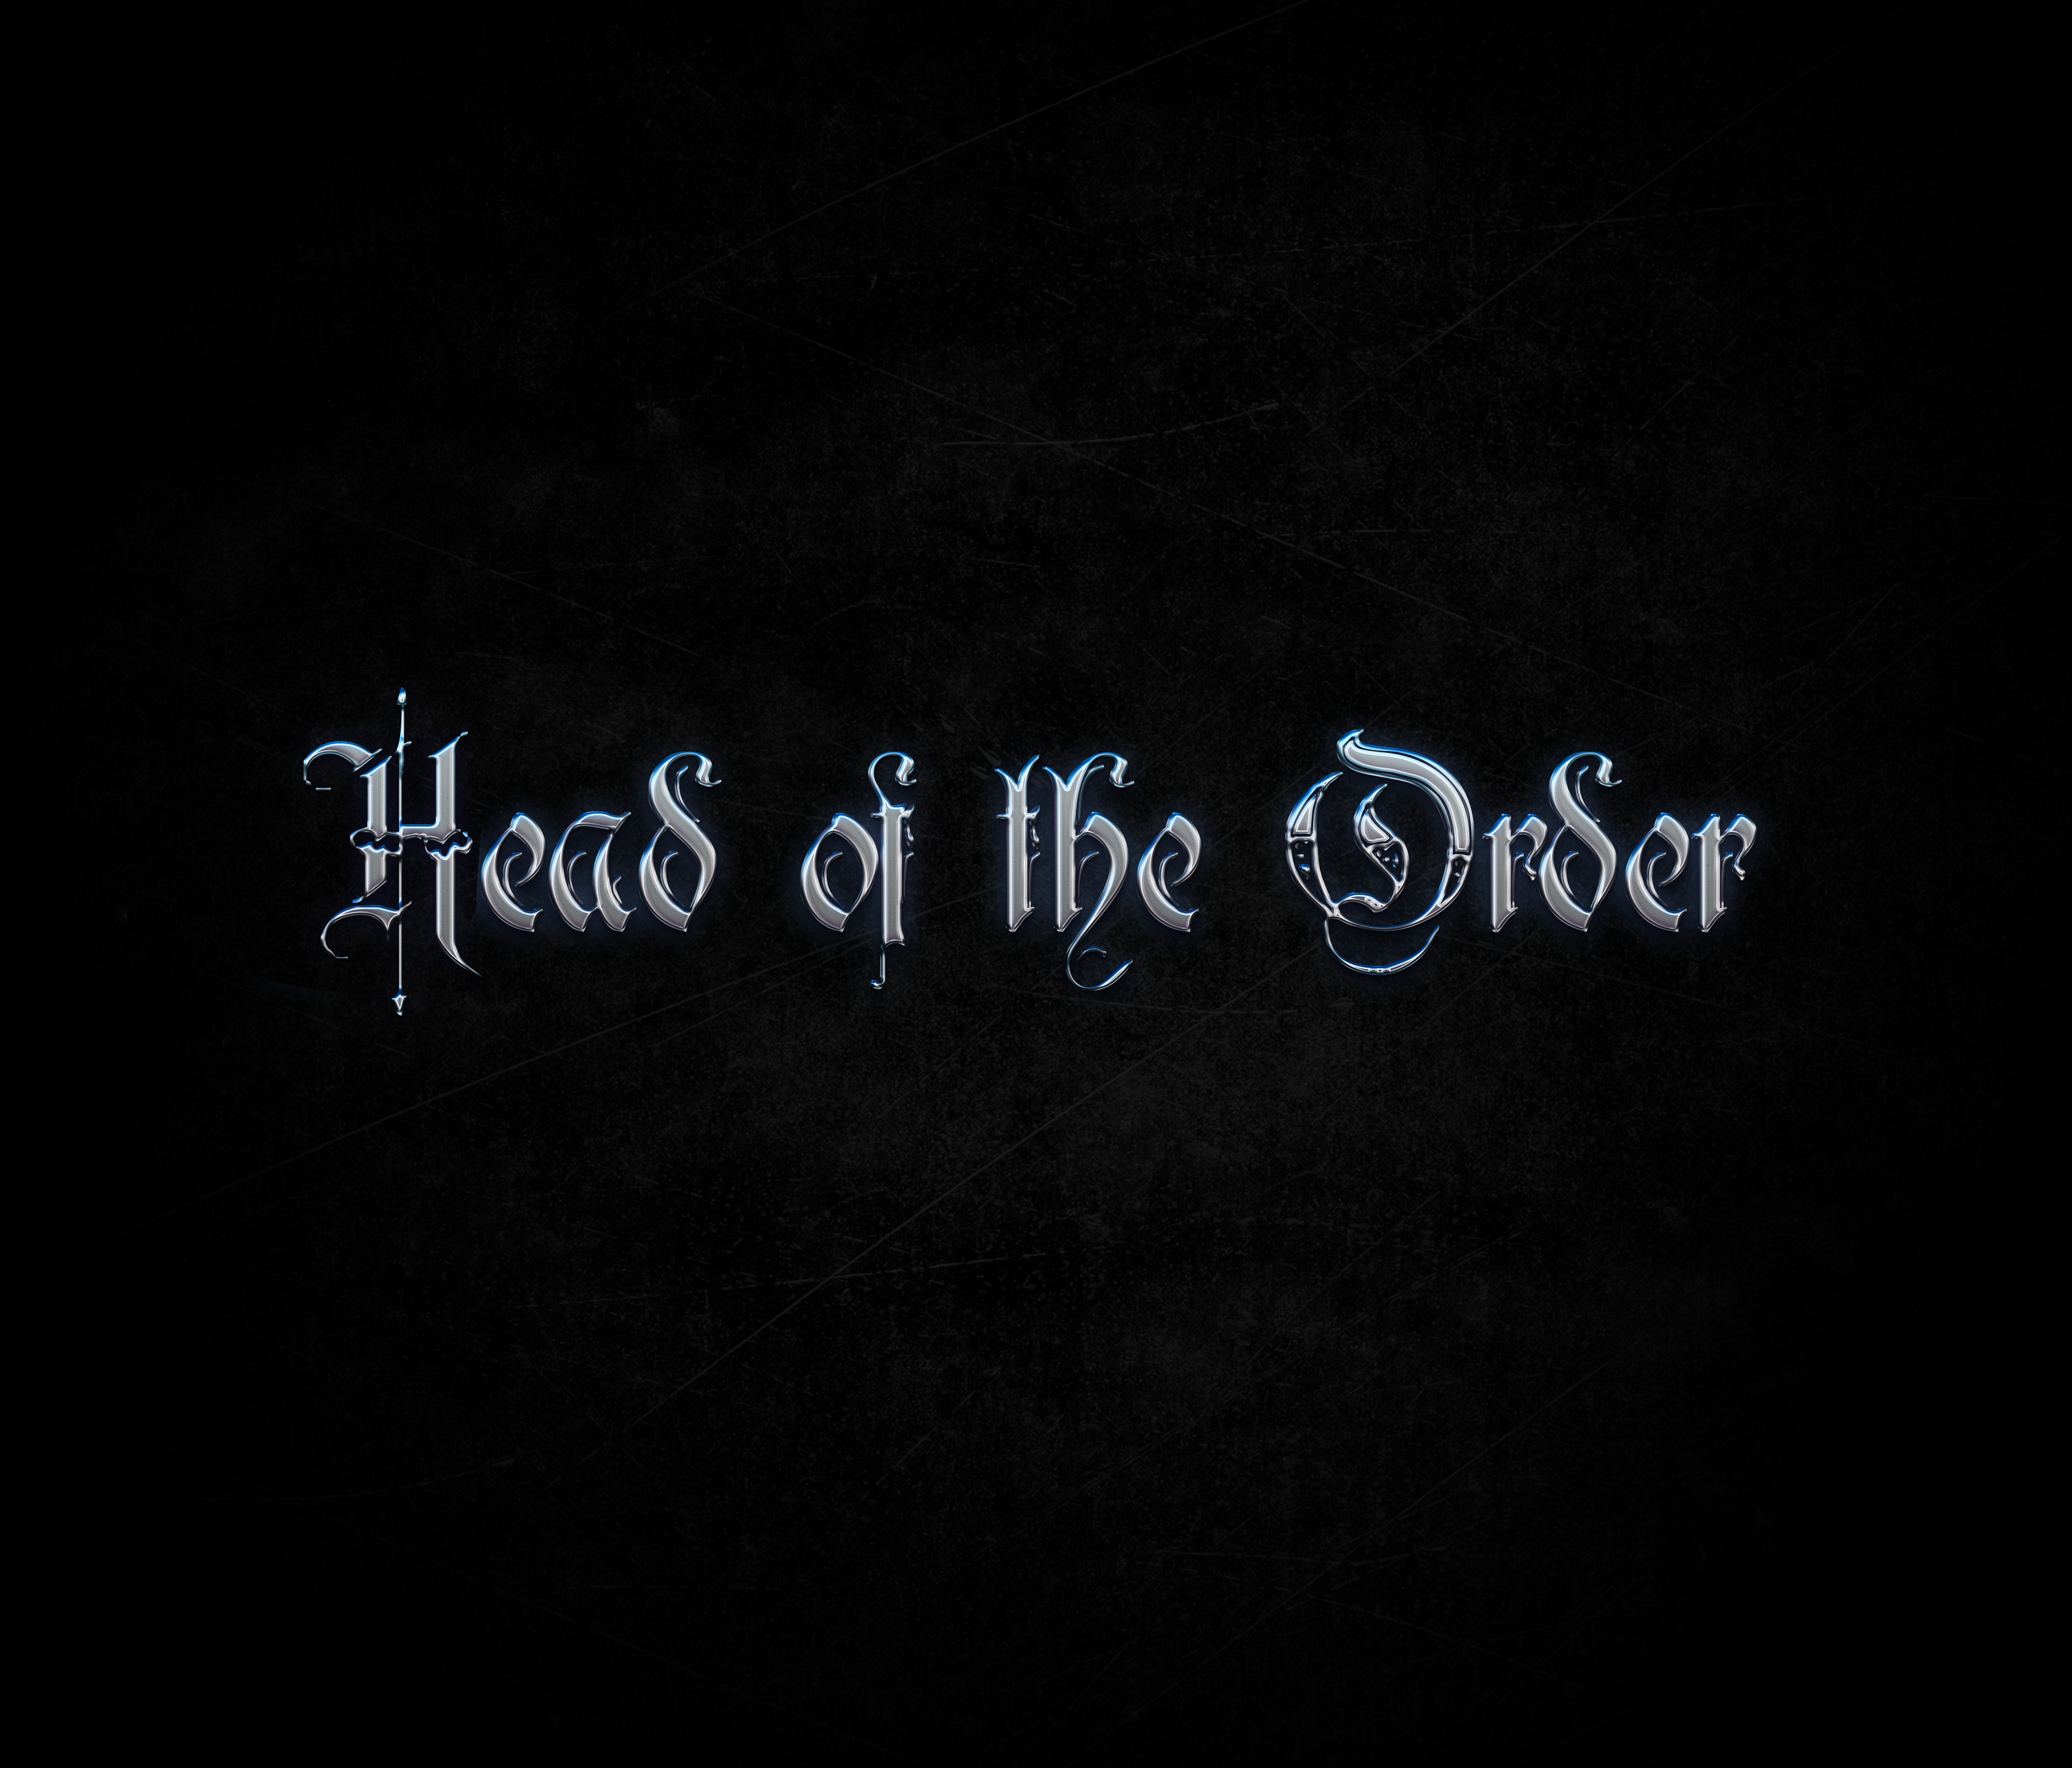 Head of the Order